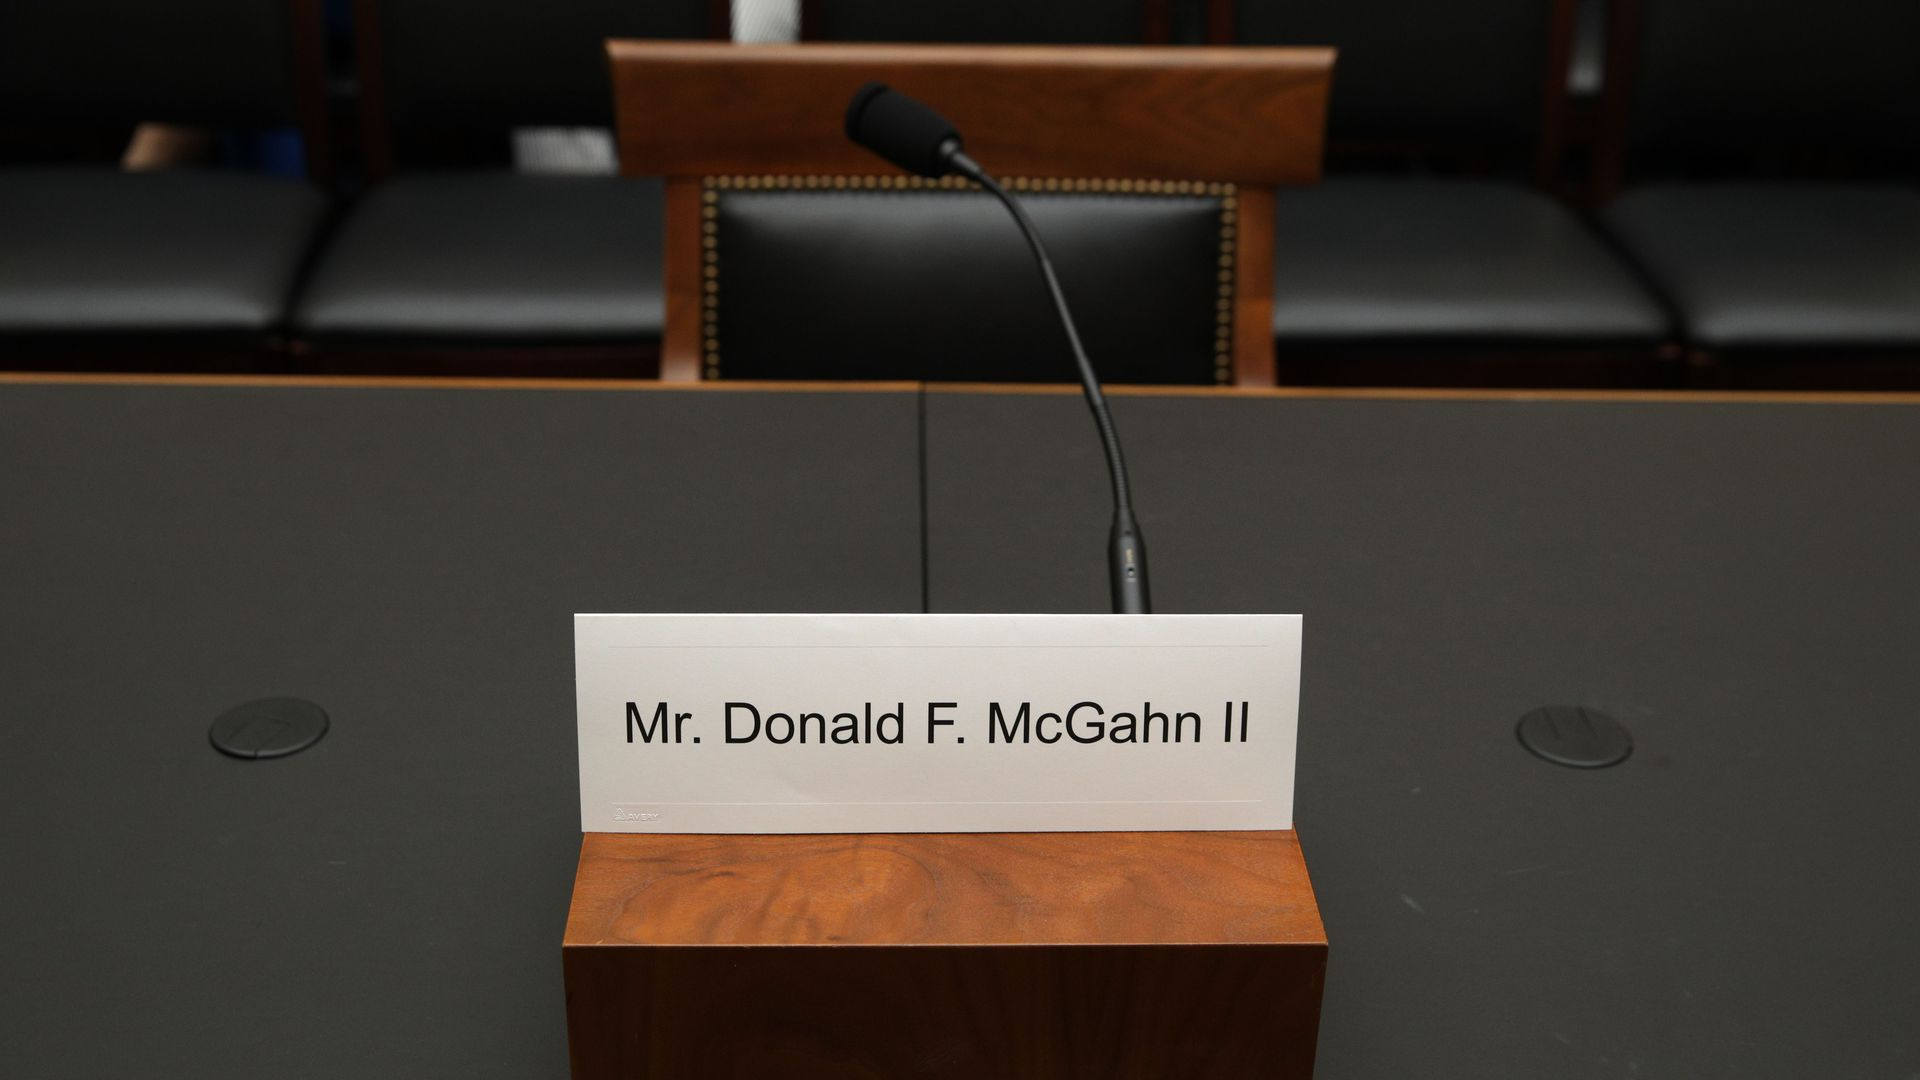 This image shows a placard for McGahn in front of an empty seat.